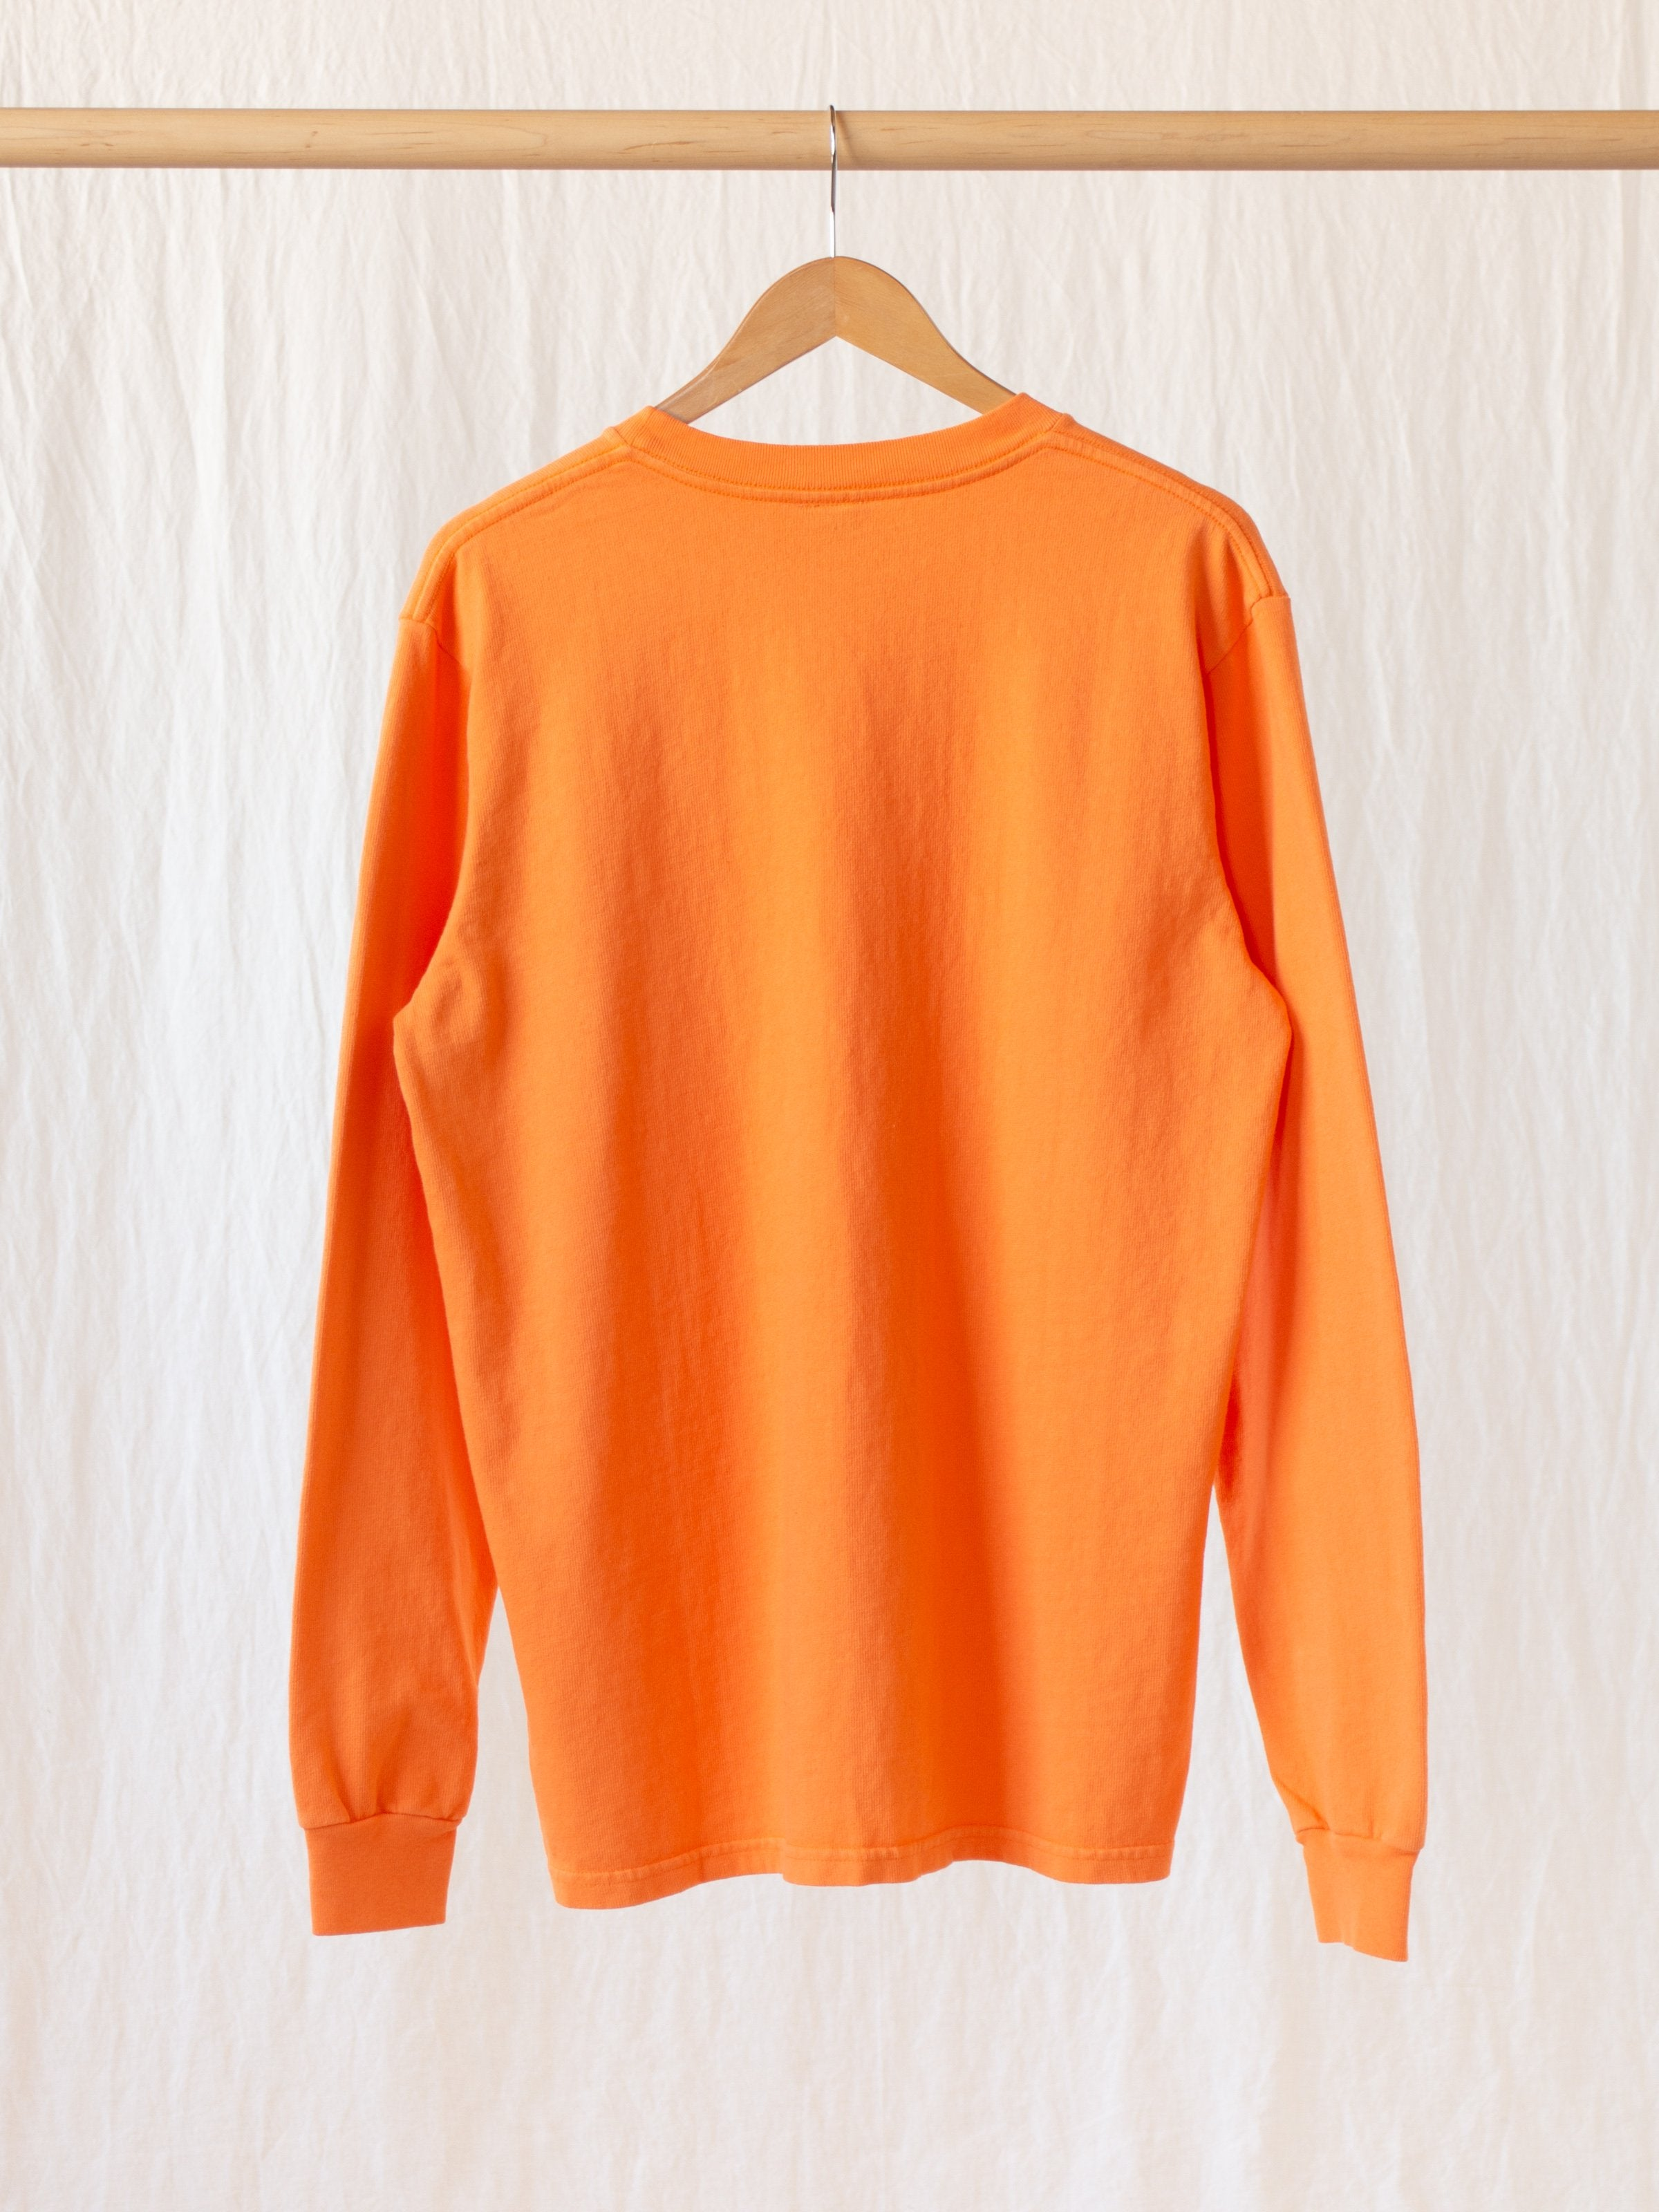 Namu Shop - paa LS Pocket Tee - Blaze Orange